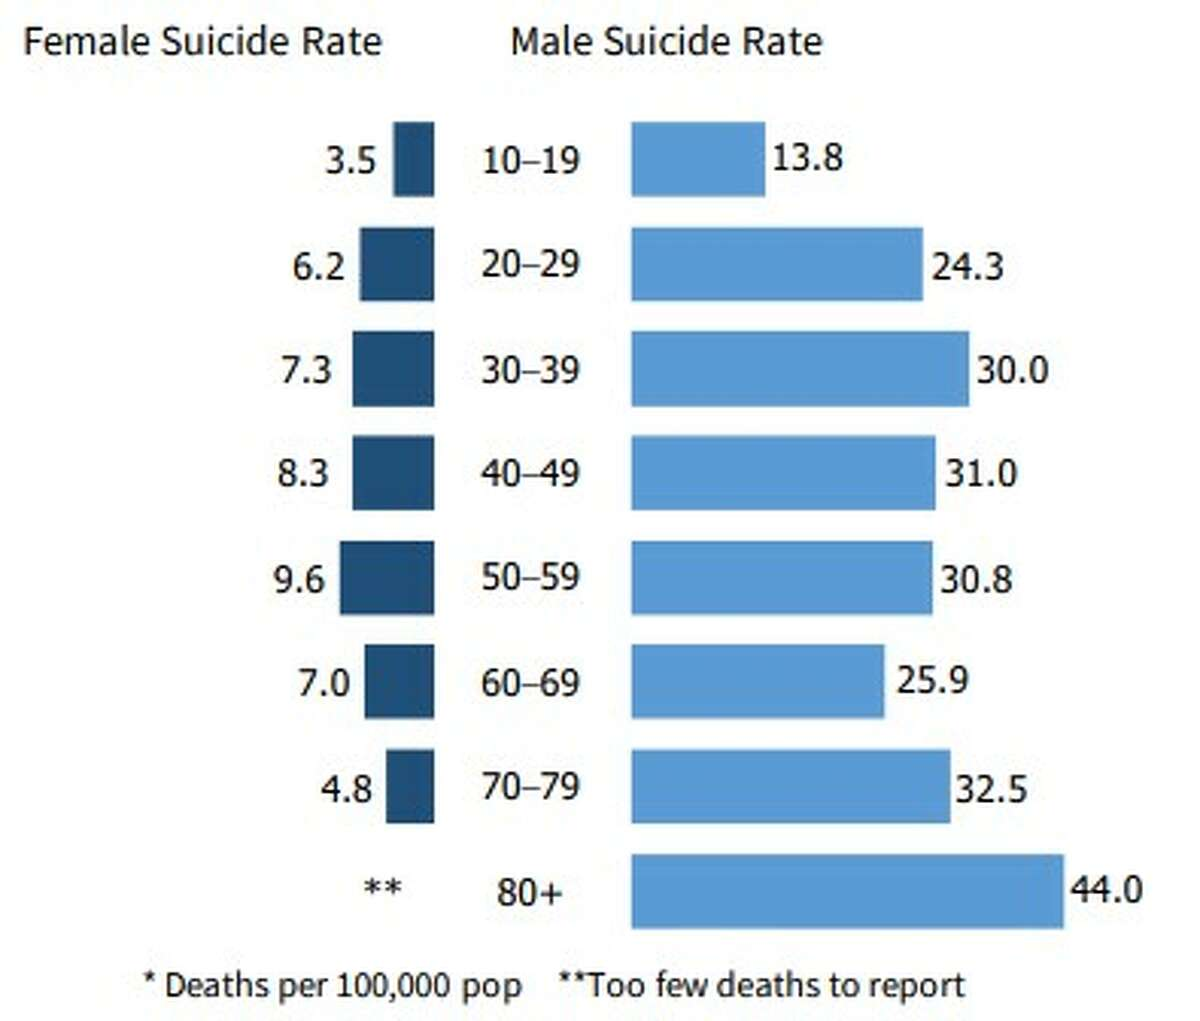 The Michigan Suicide Prevention Commission found that suicide attempts are more common among women than men, but men are more likely to die by suicide than women because they use more lethal means.